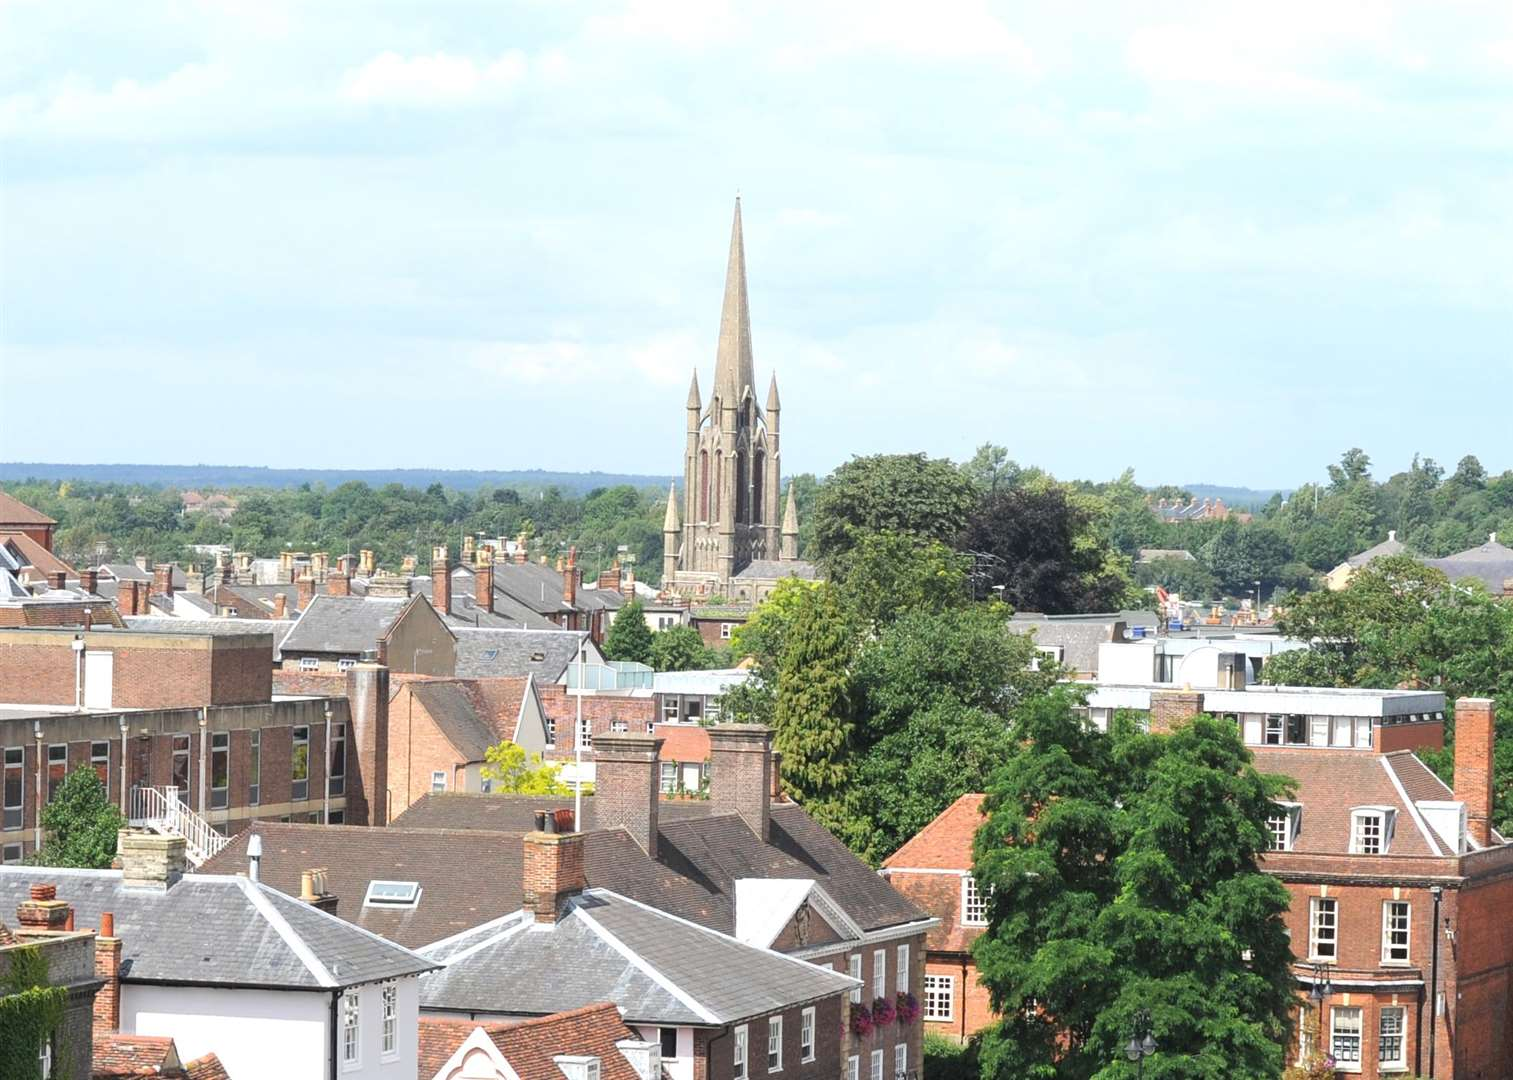 St John's Church's spire seen over Bury's rooftops